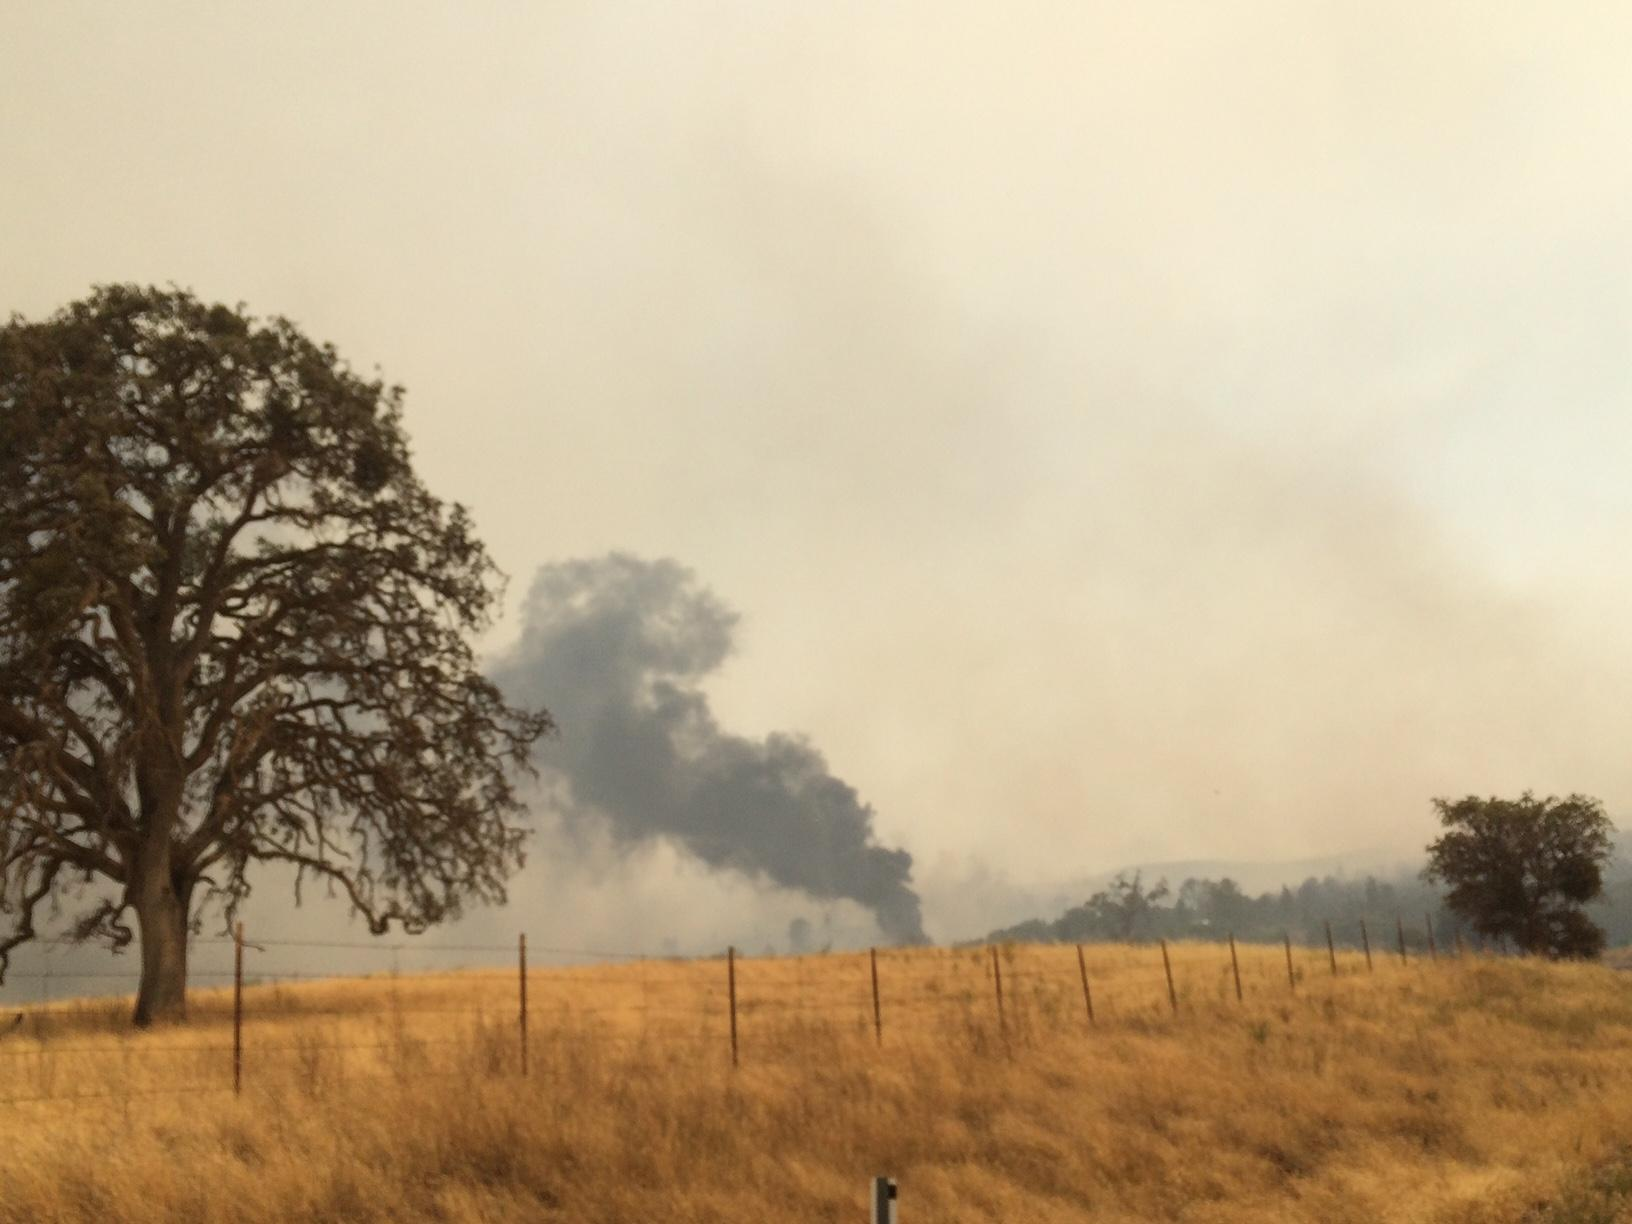 Detwiler Fire Growth Slows; 75000 Acres Burned, 61 Homes Destroyed